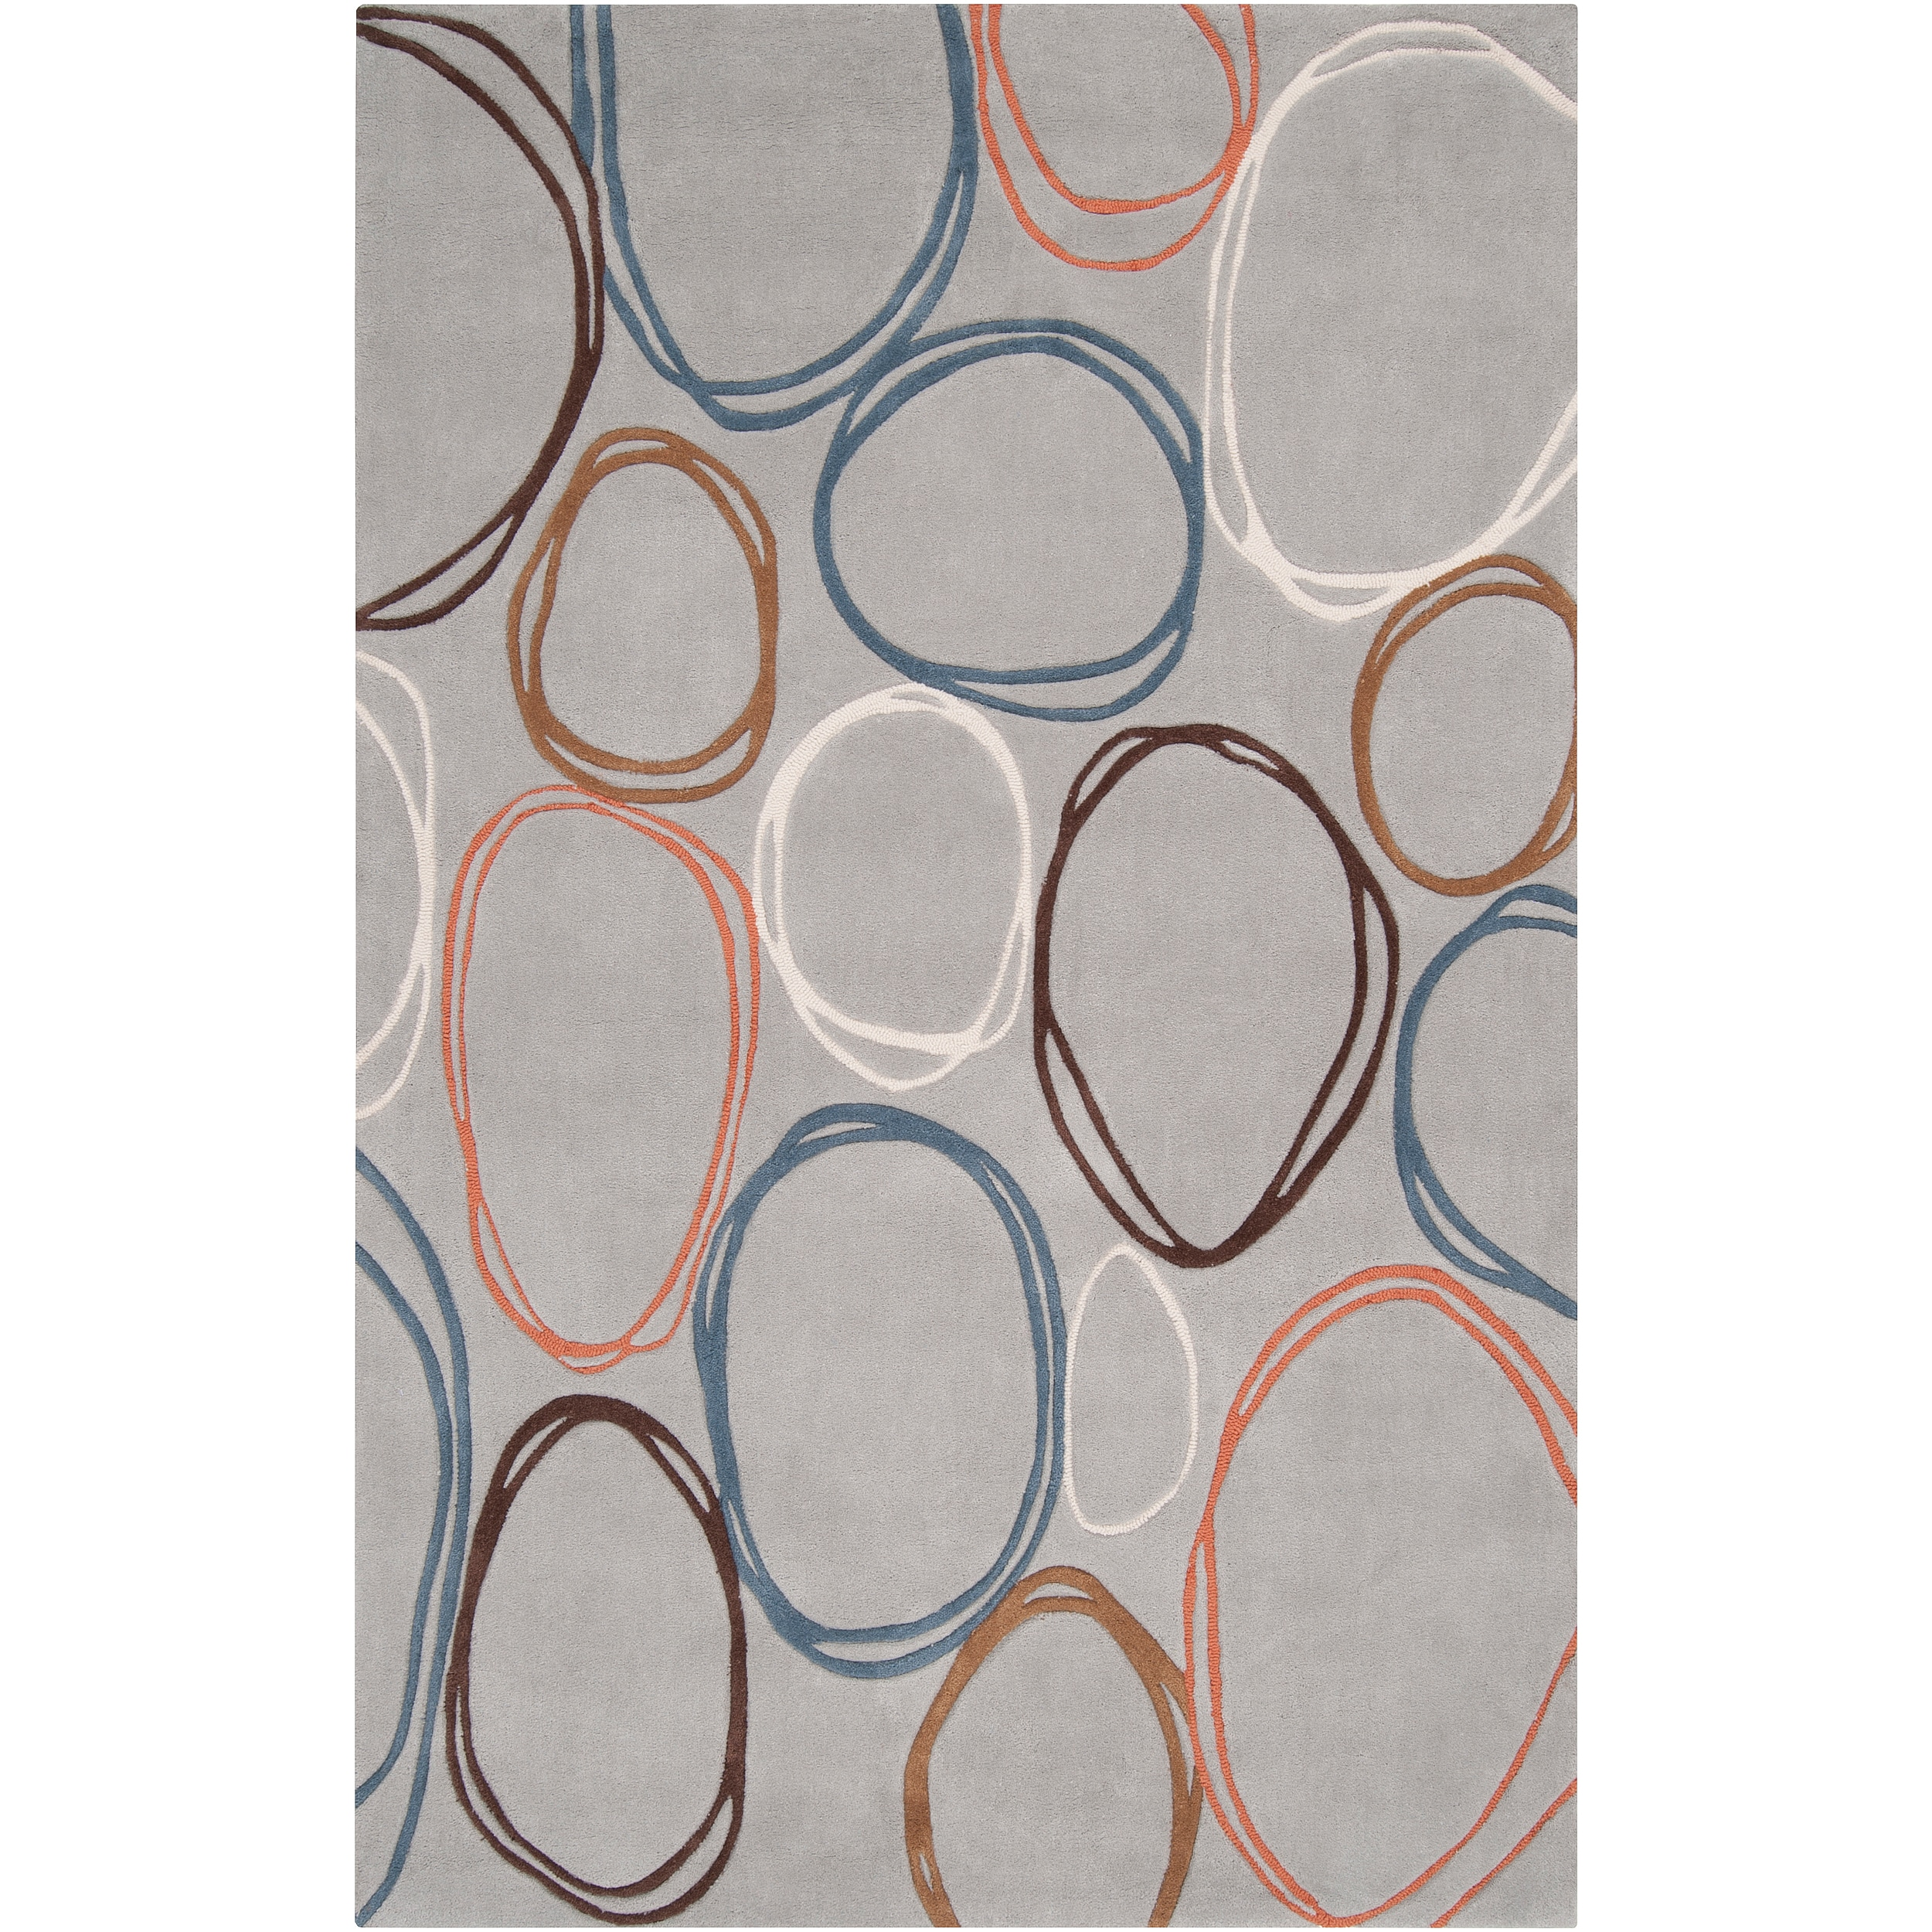 Hand-tufted Contemporary Grey Dragonets Geometric Circles Abstract Rug (3'6 x 5'6)